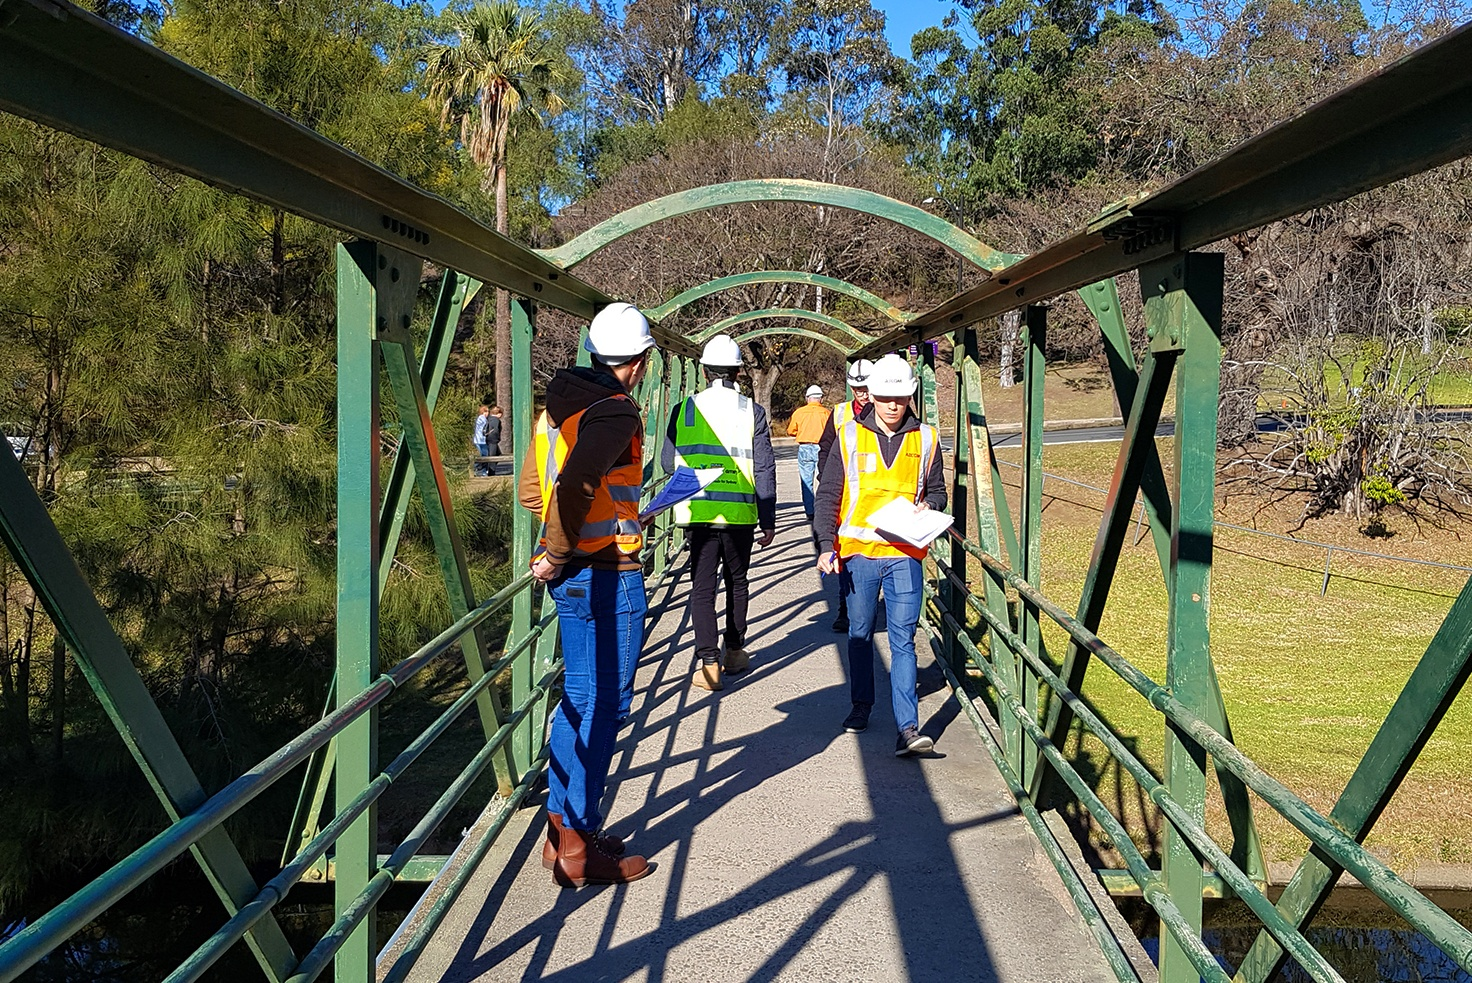 Bridge Inspection Levels 1 & 2 Port Melbourne February 2021 (Group 2)